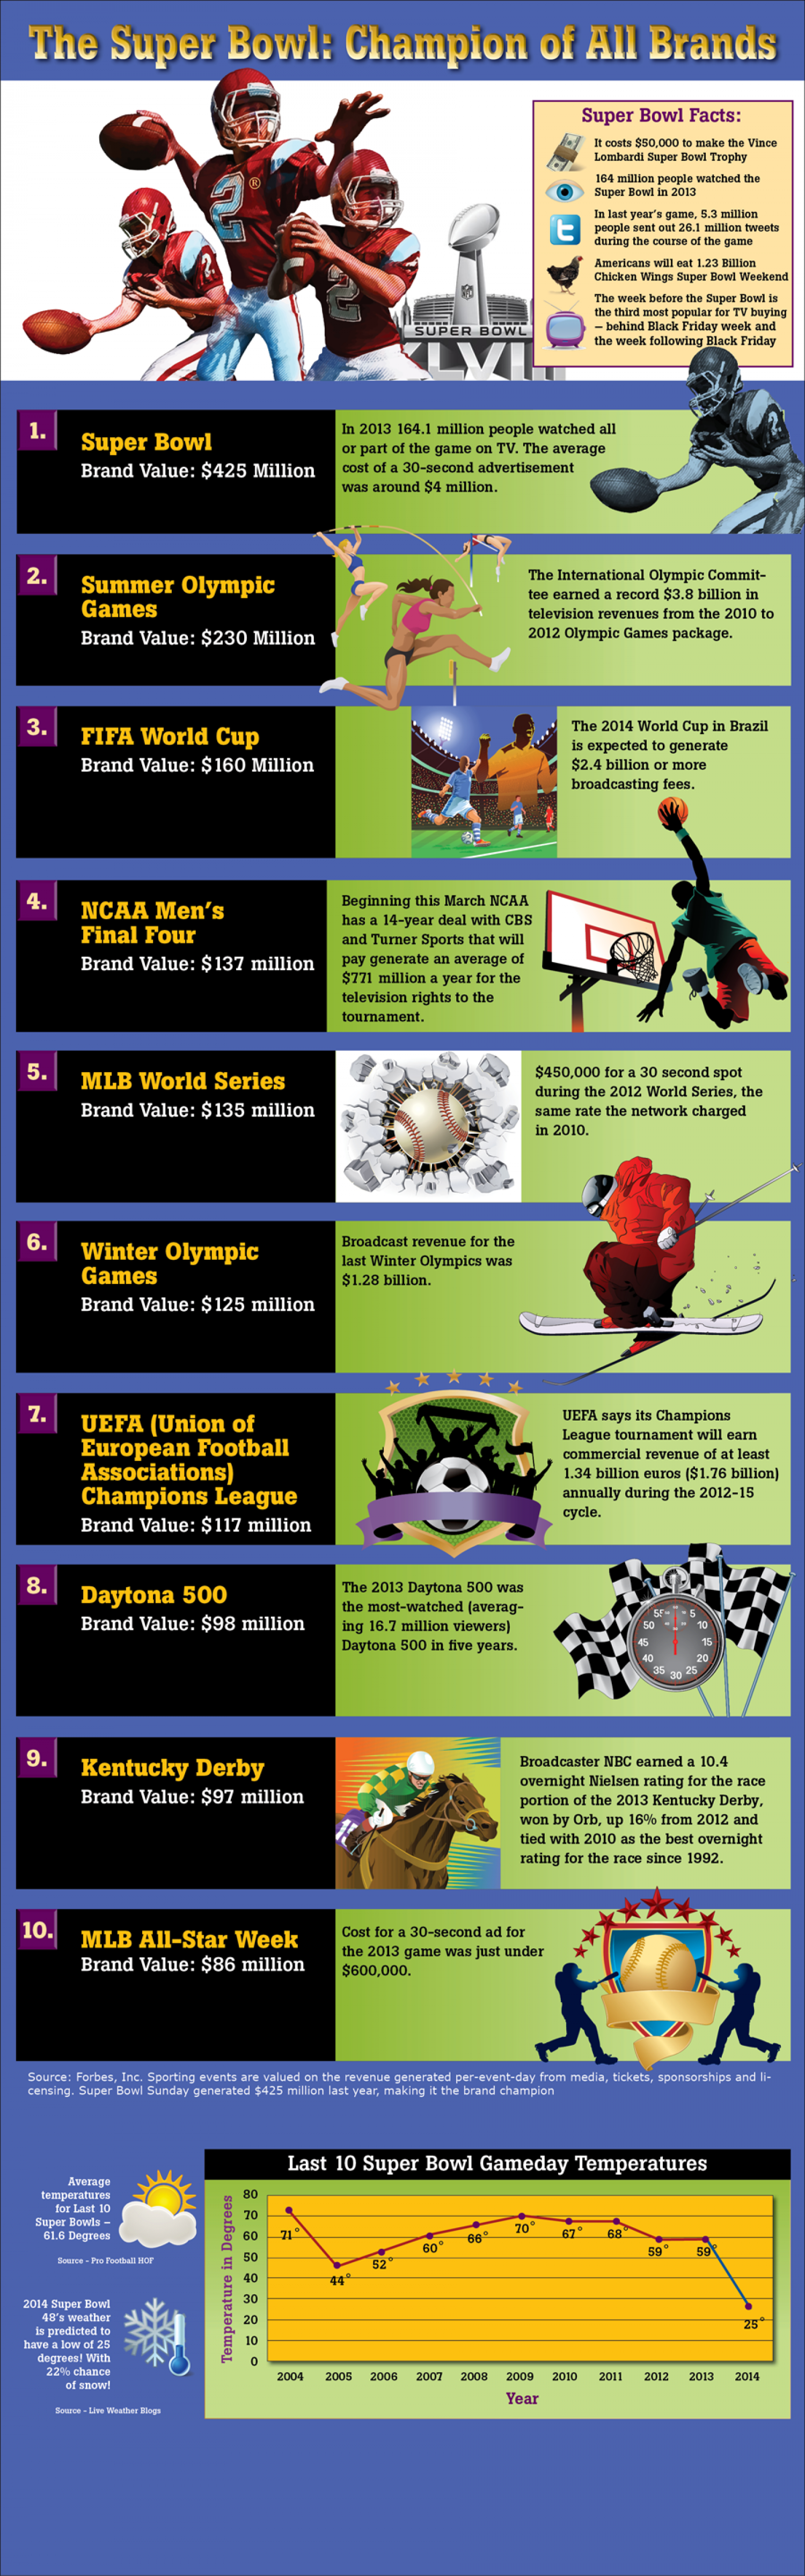 The Superbowl - Champion of all Brands Infographic